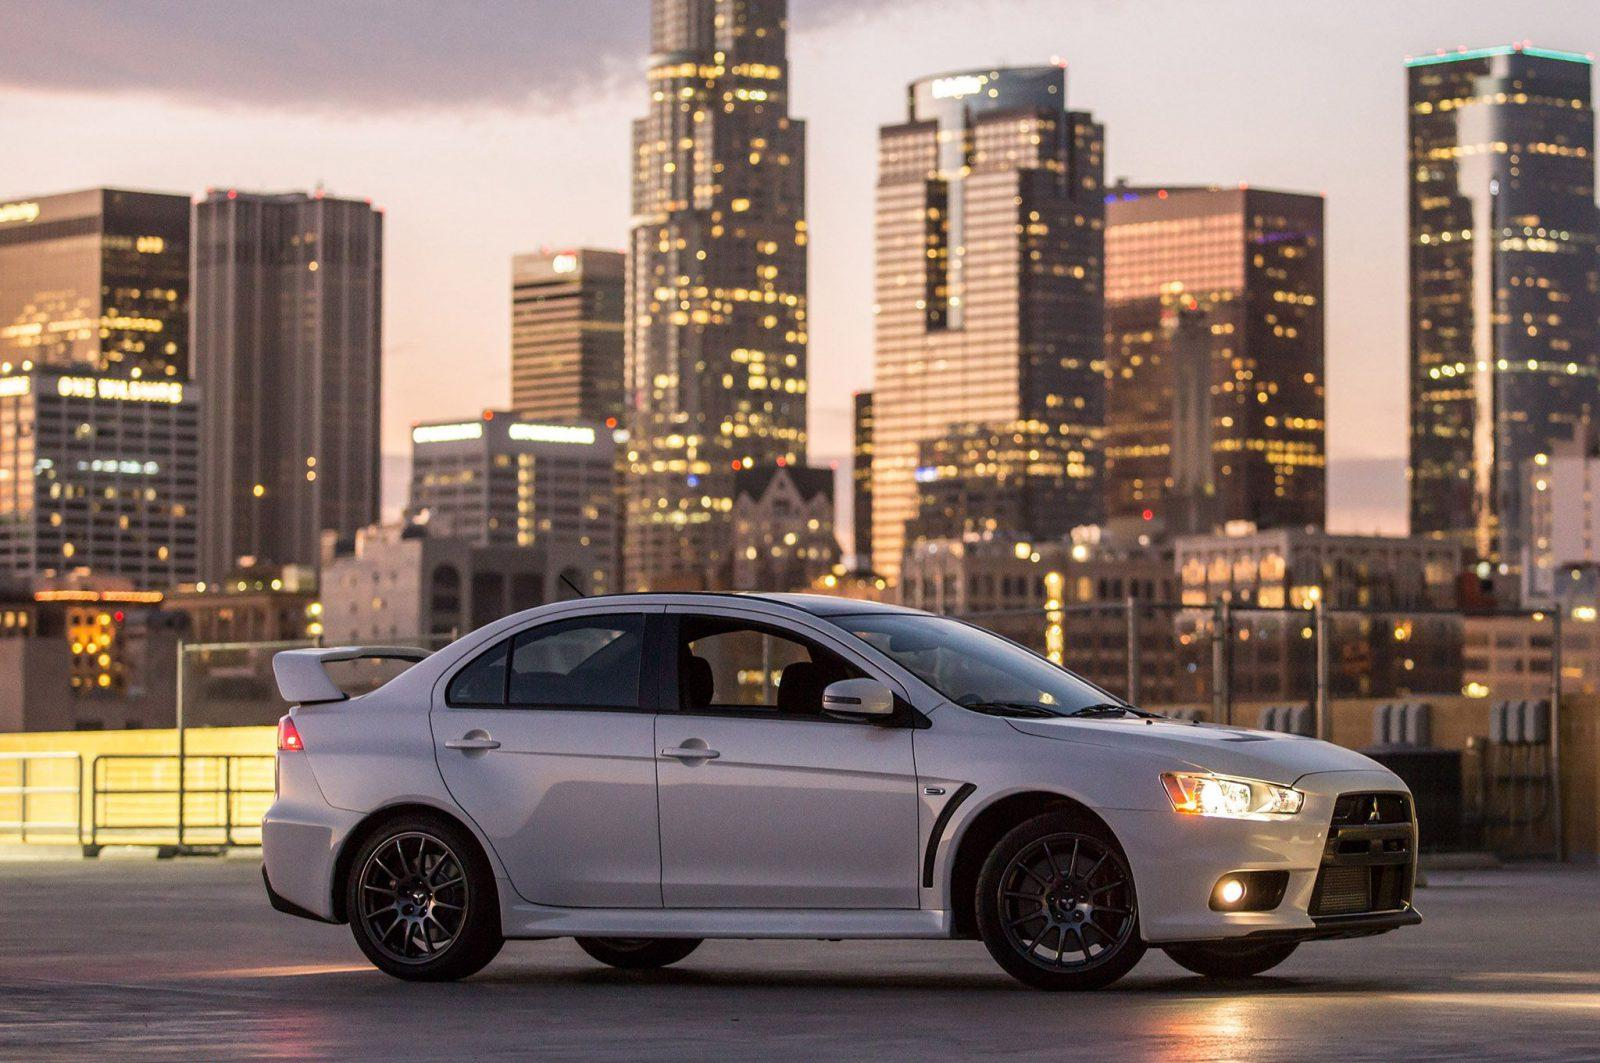 2015 mitsubishi lancer review, images & specs - car from japan